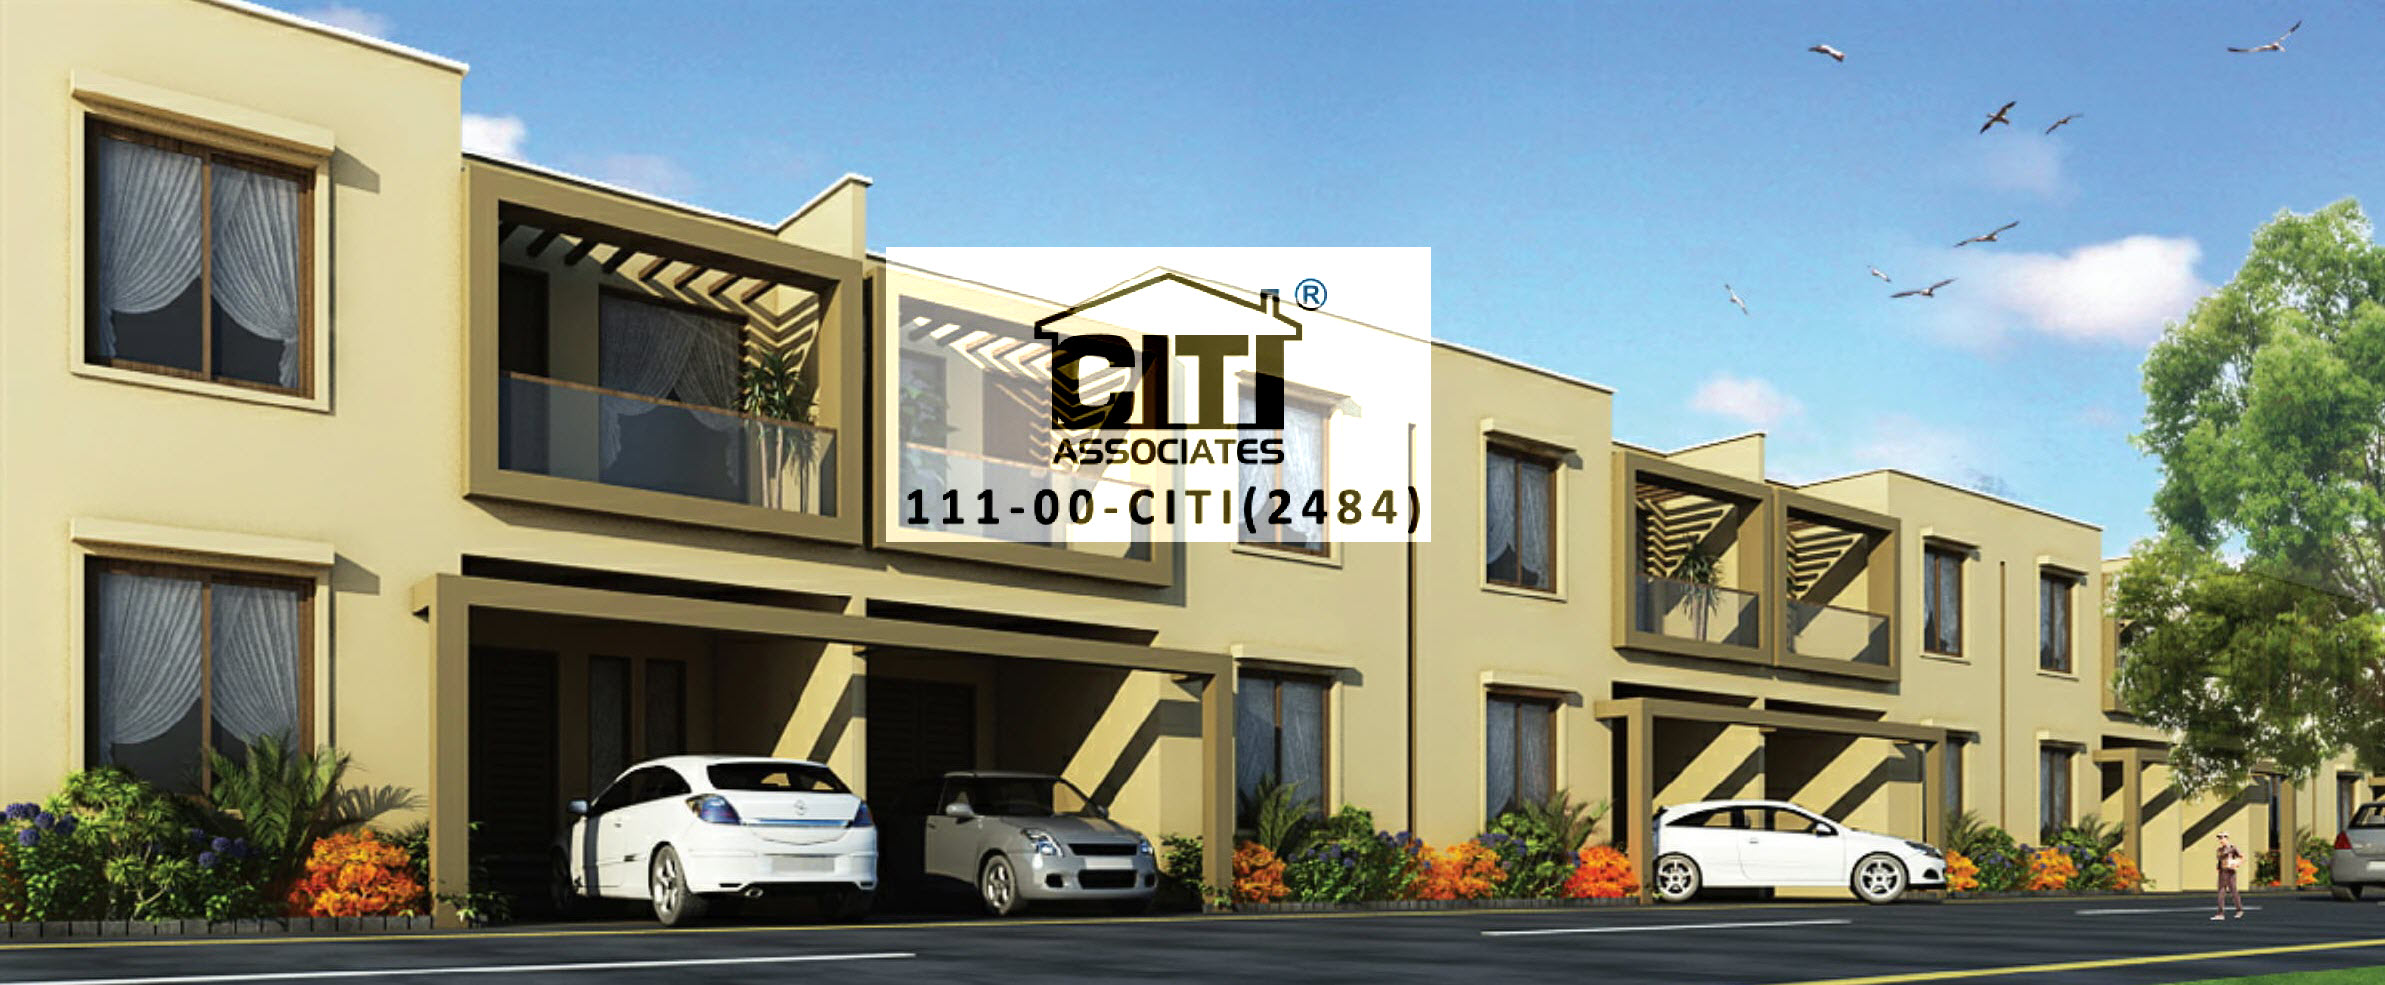 Want to construct your house in bahria town karachi kindly contact citi associates at infocitiassociates org